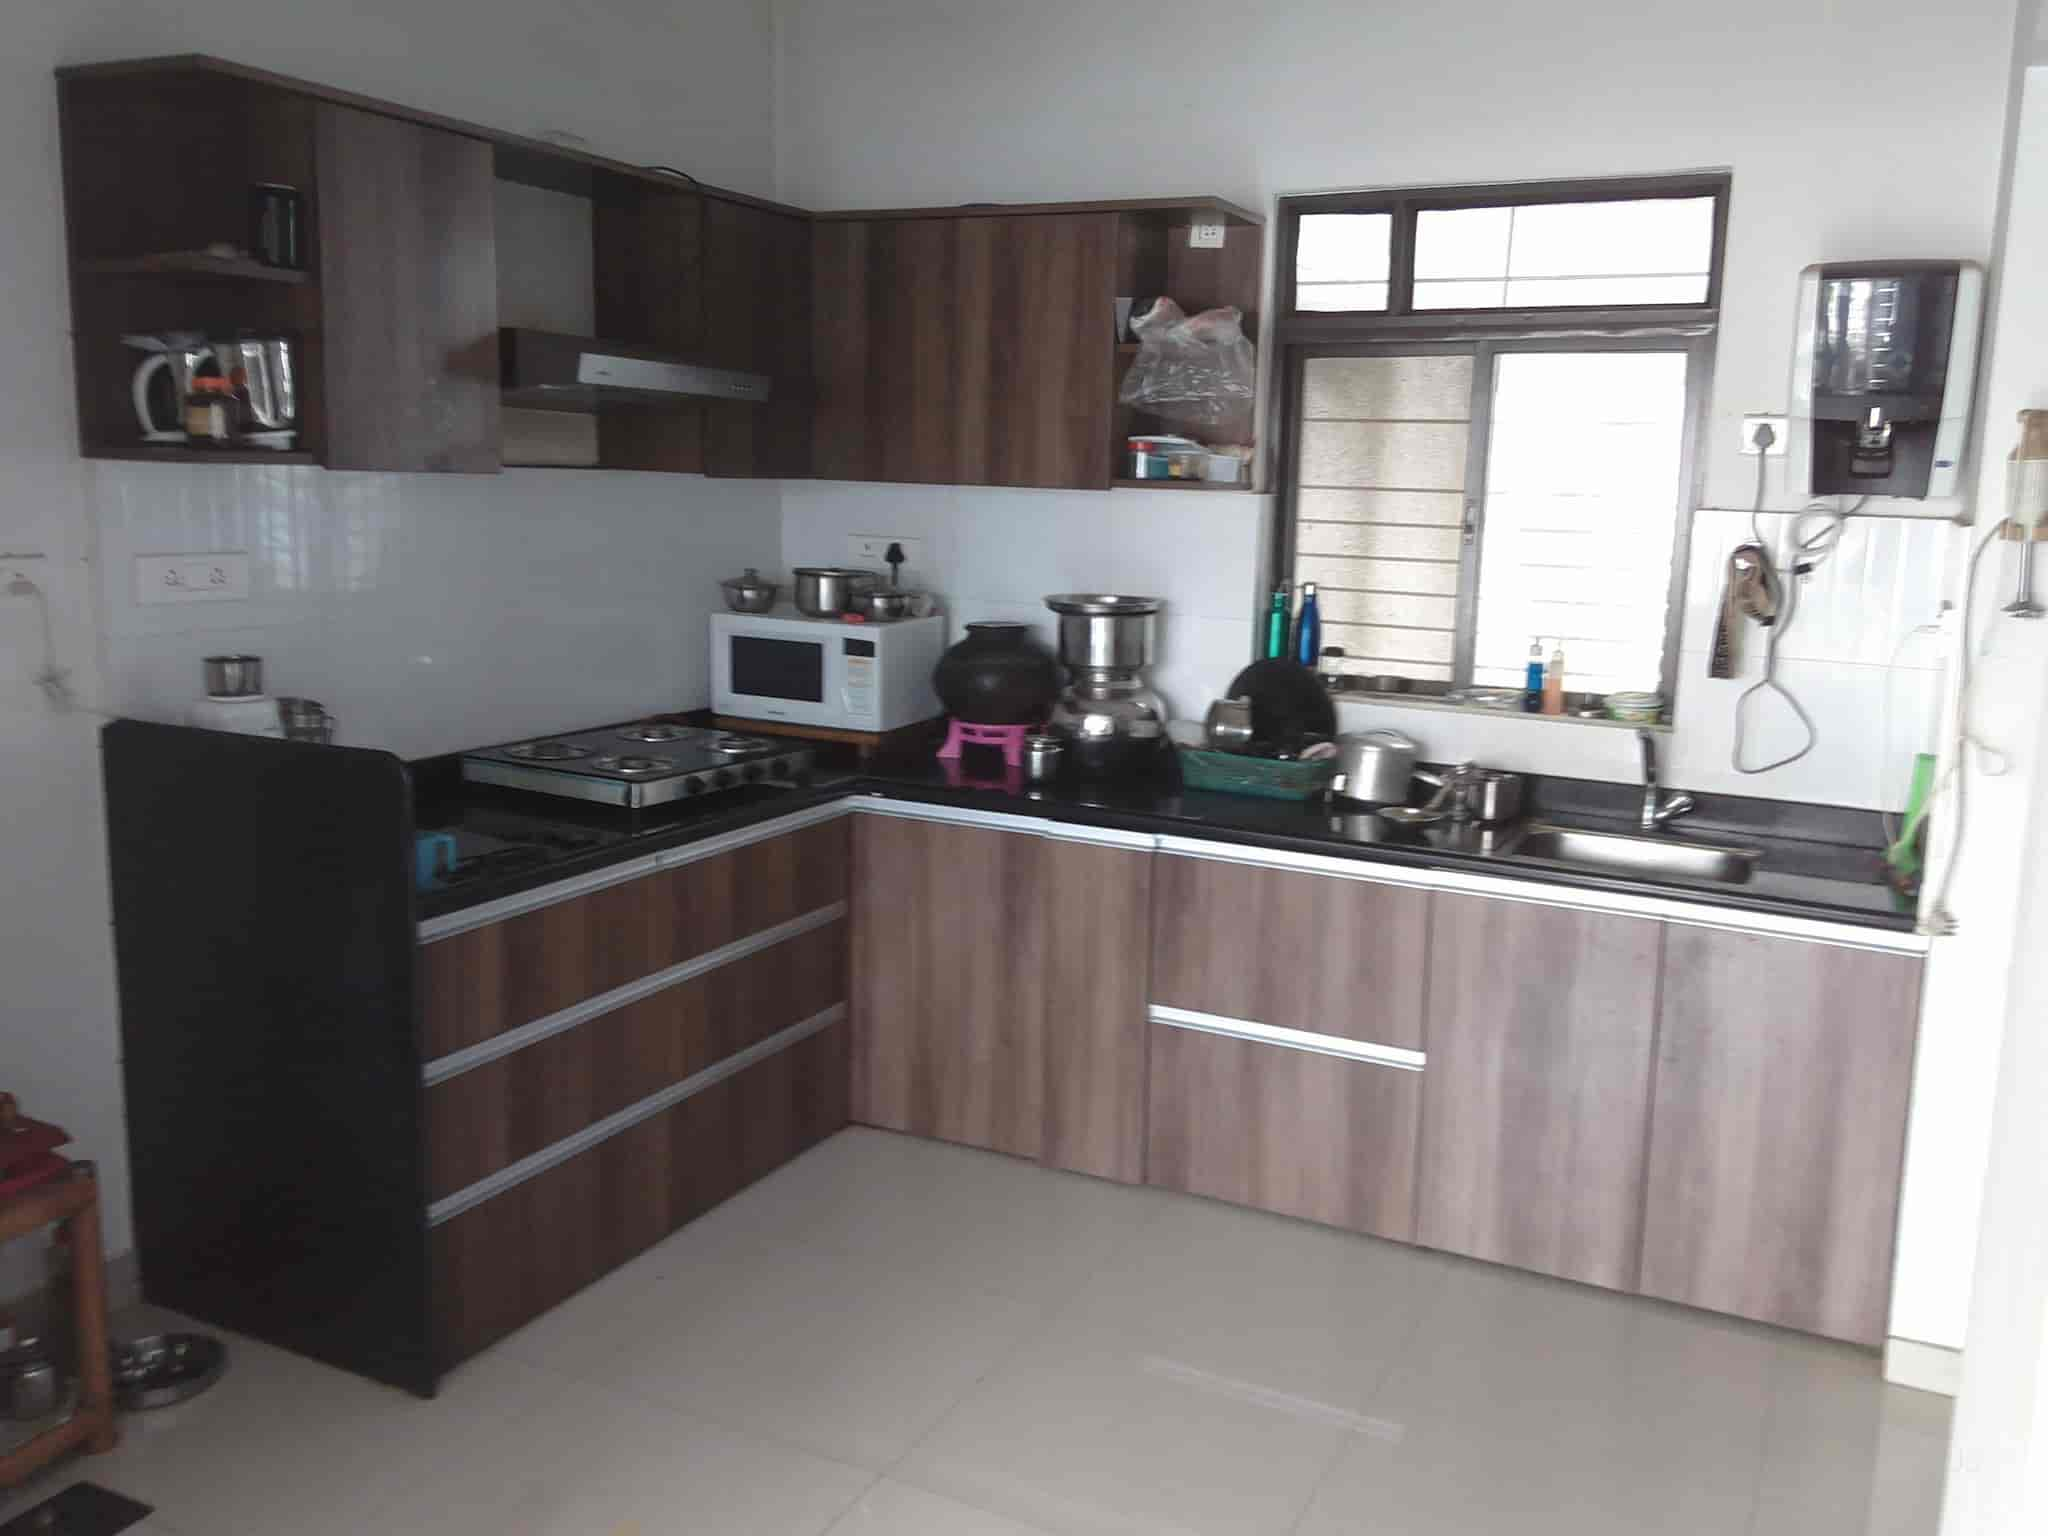 metro kitchen and interior solution cidco metro kitchen interior solution modular kitchen dealers in nashik justdial - Metro Kitchen